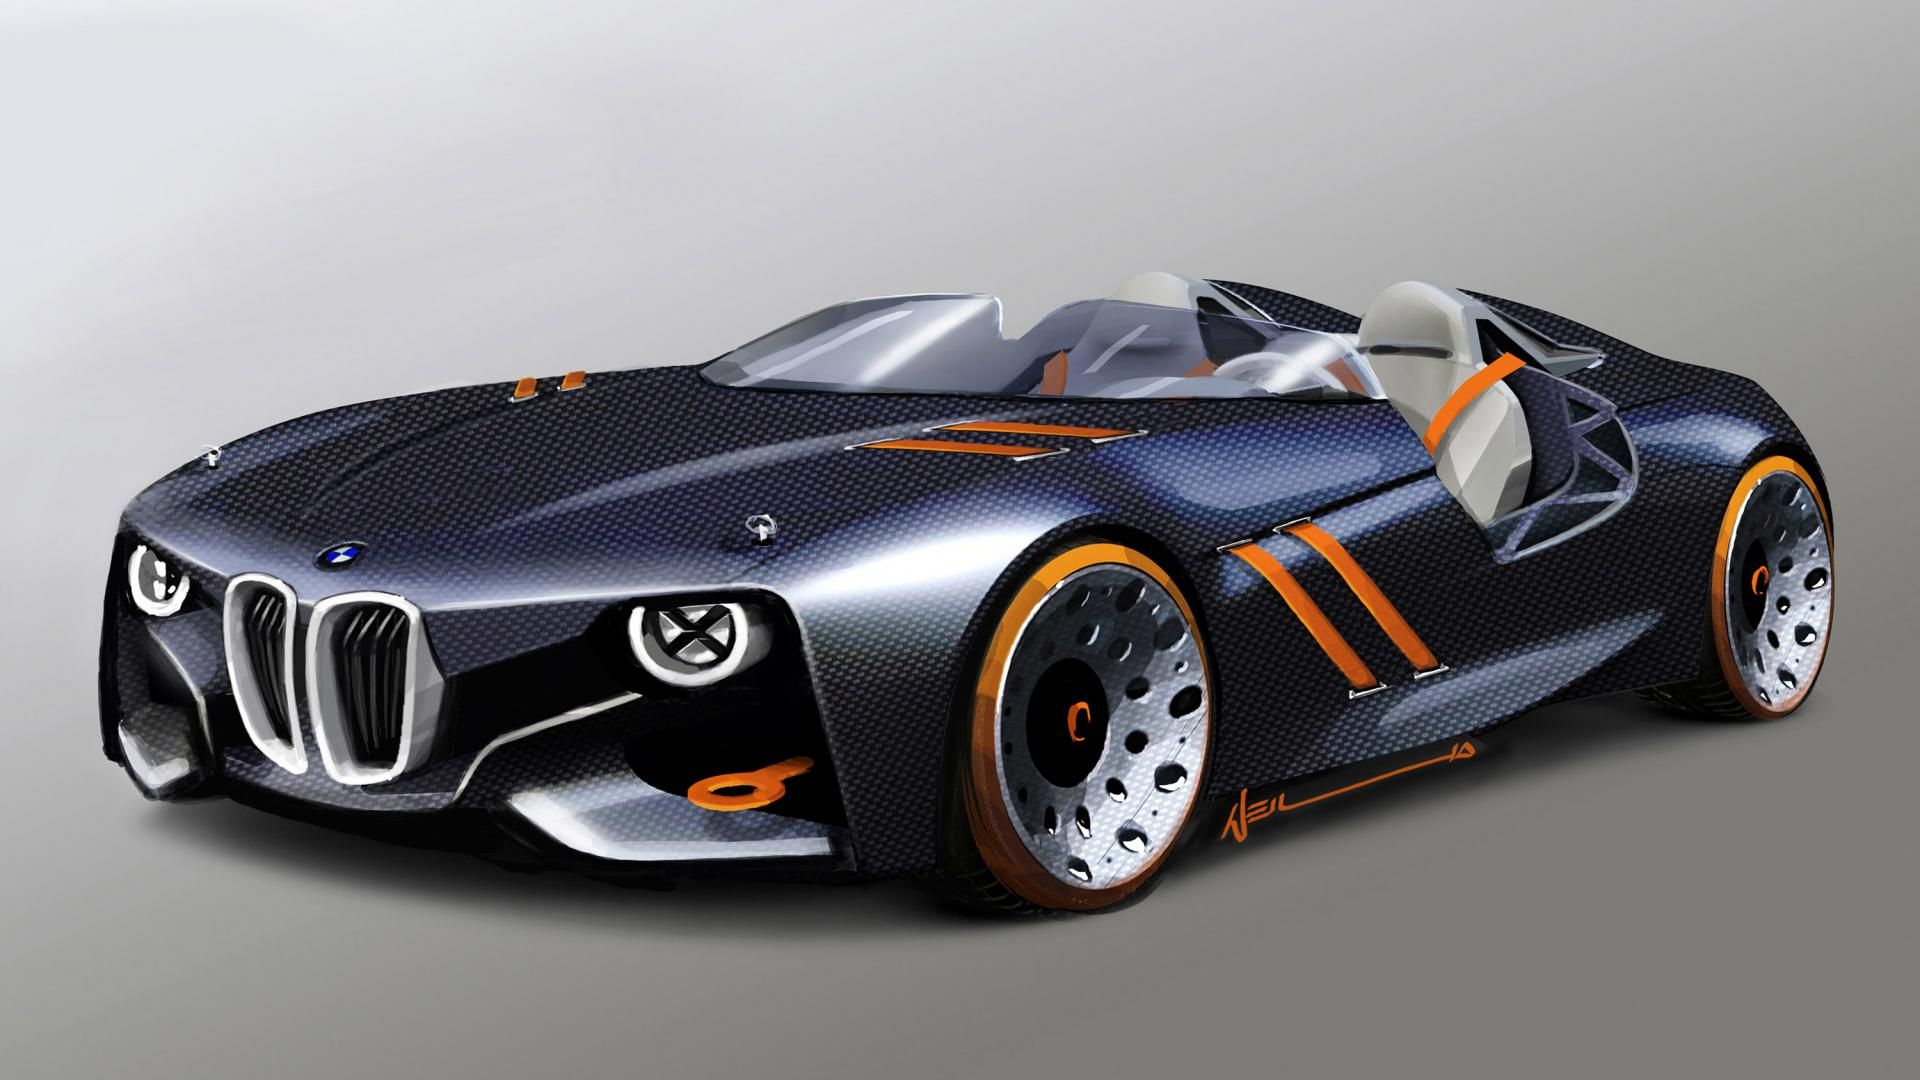 Superieur BMW 328 Hommage Concept 2011 Widescreen Exotic Car Wallpapers Of 55 :  DieselStation